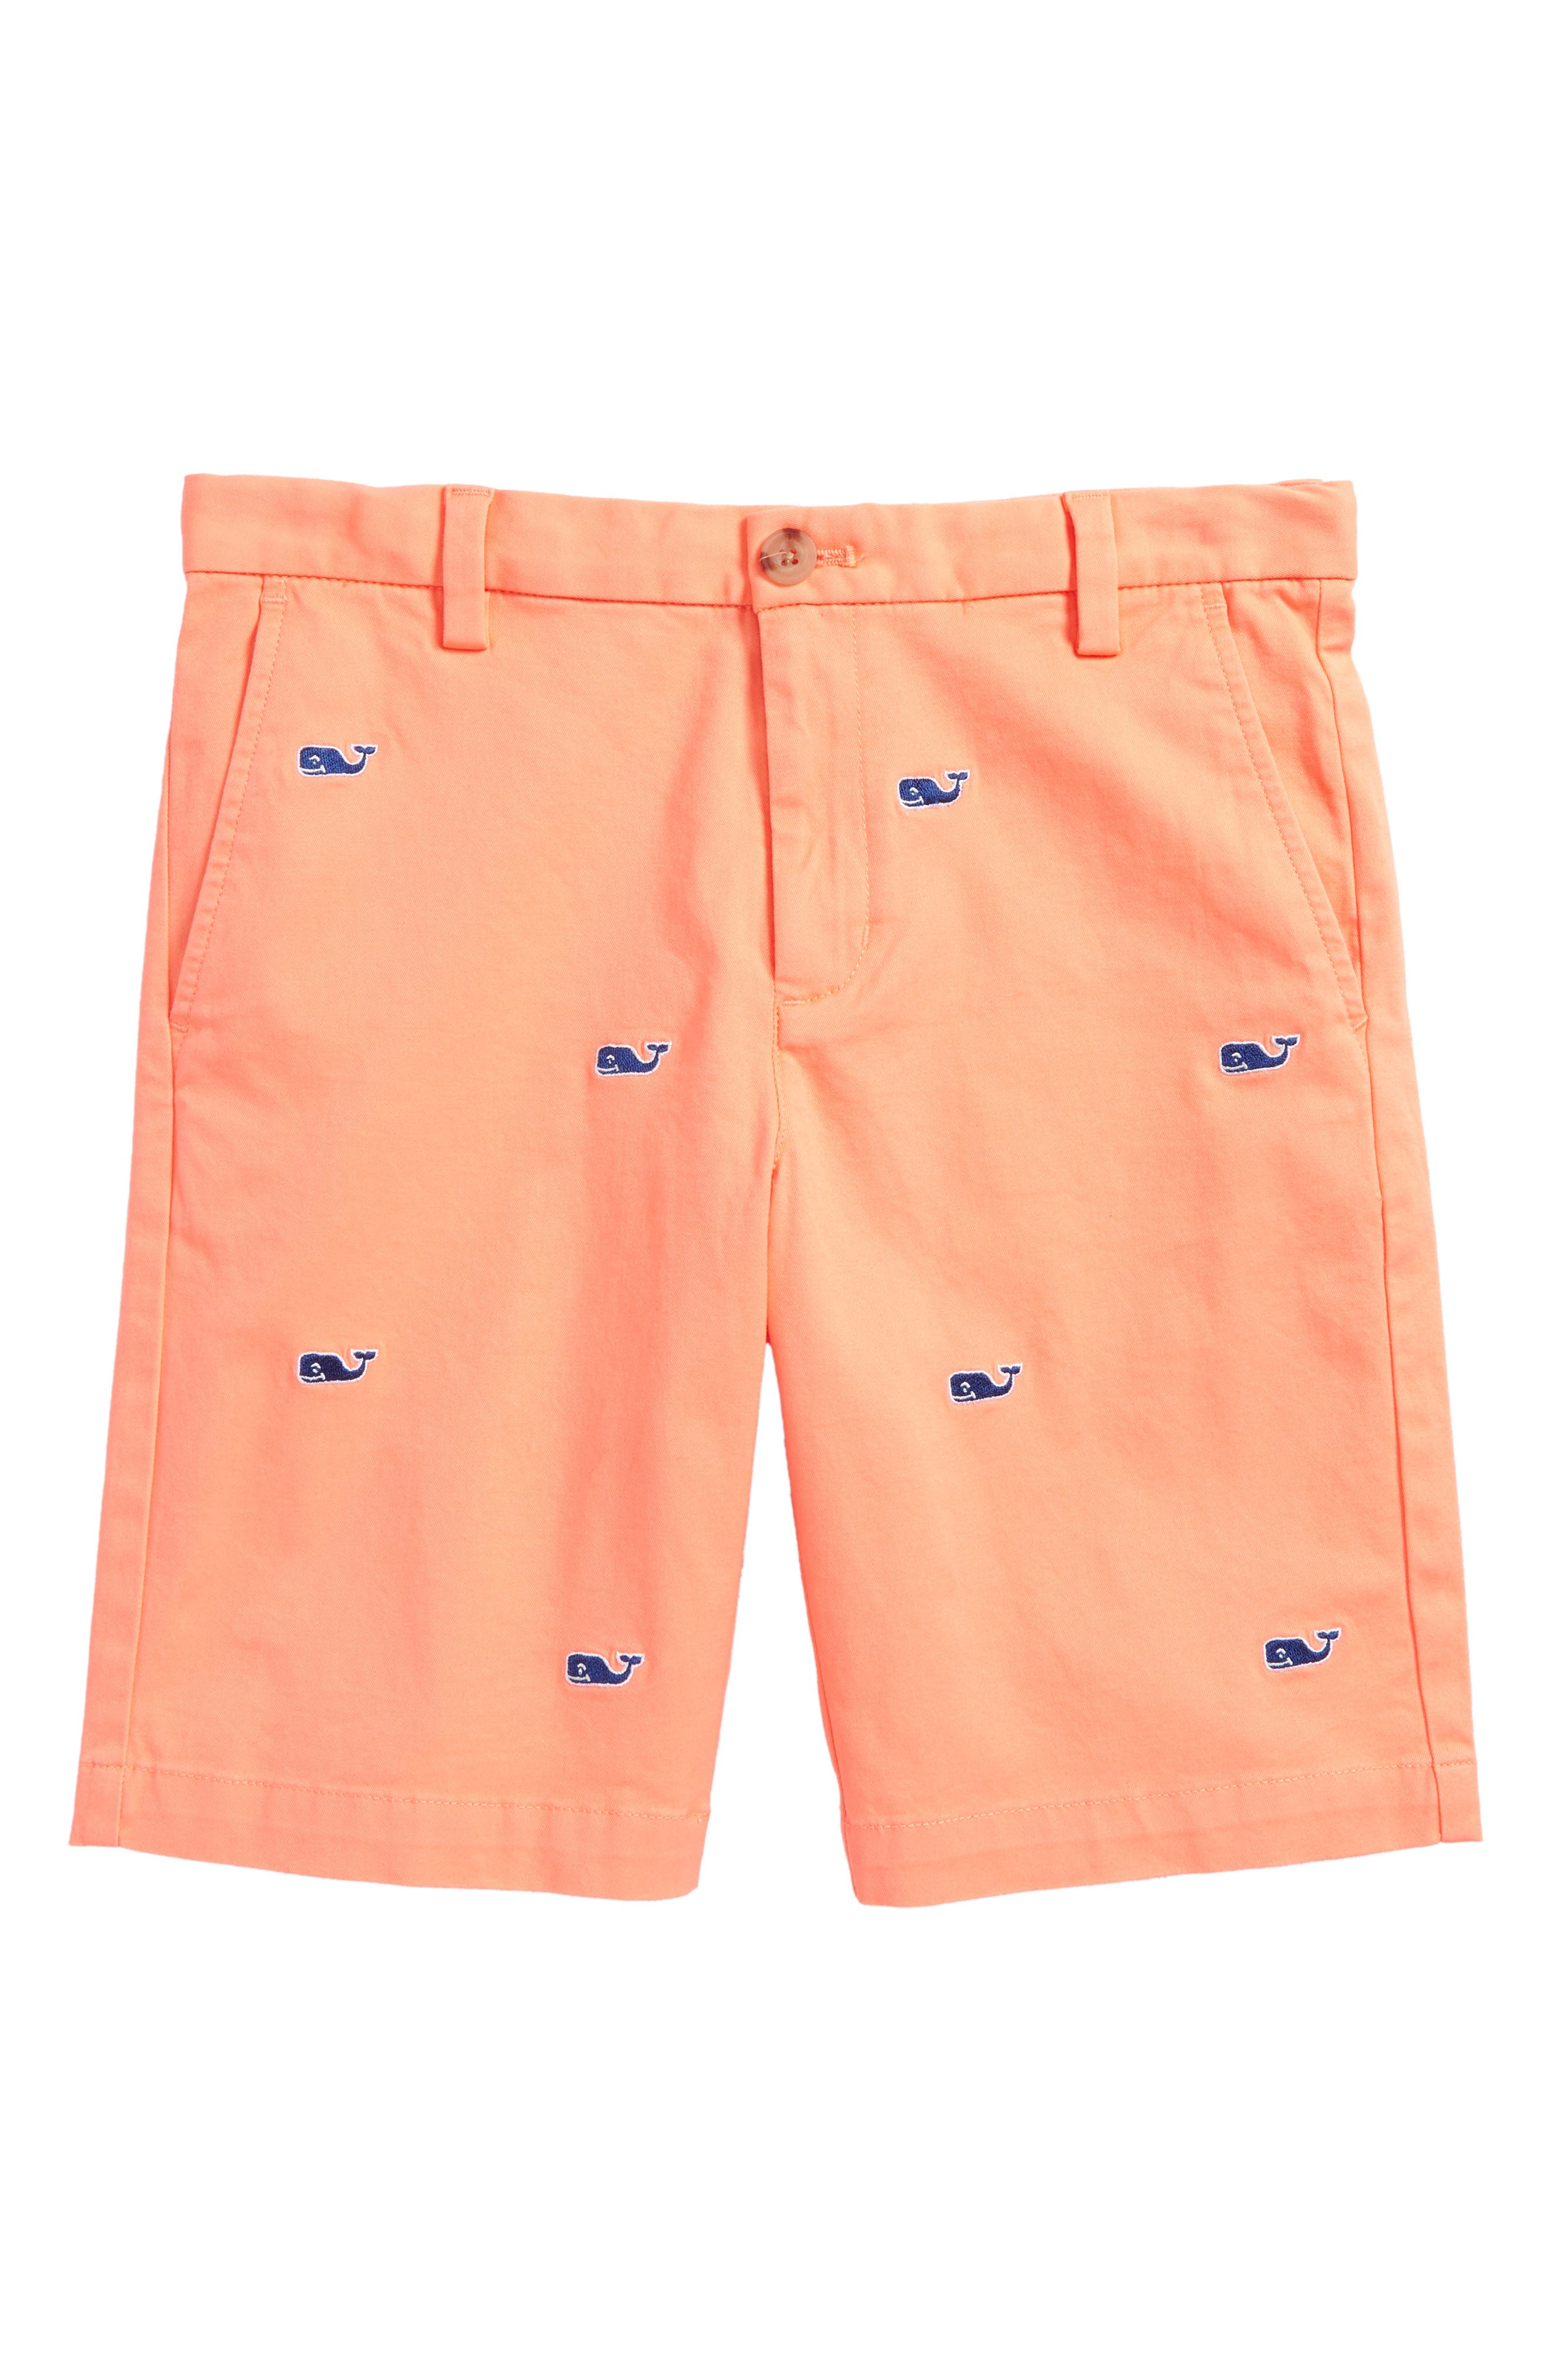 Stretch Breaker Whale Embroidered Shorts,                             Main thumbnail 1, color,